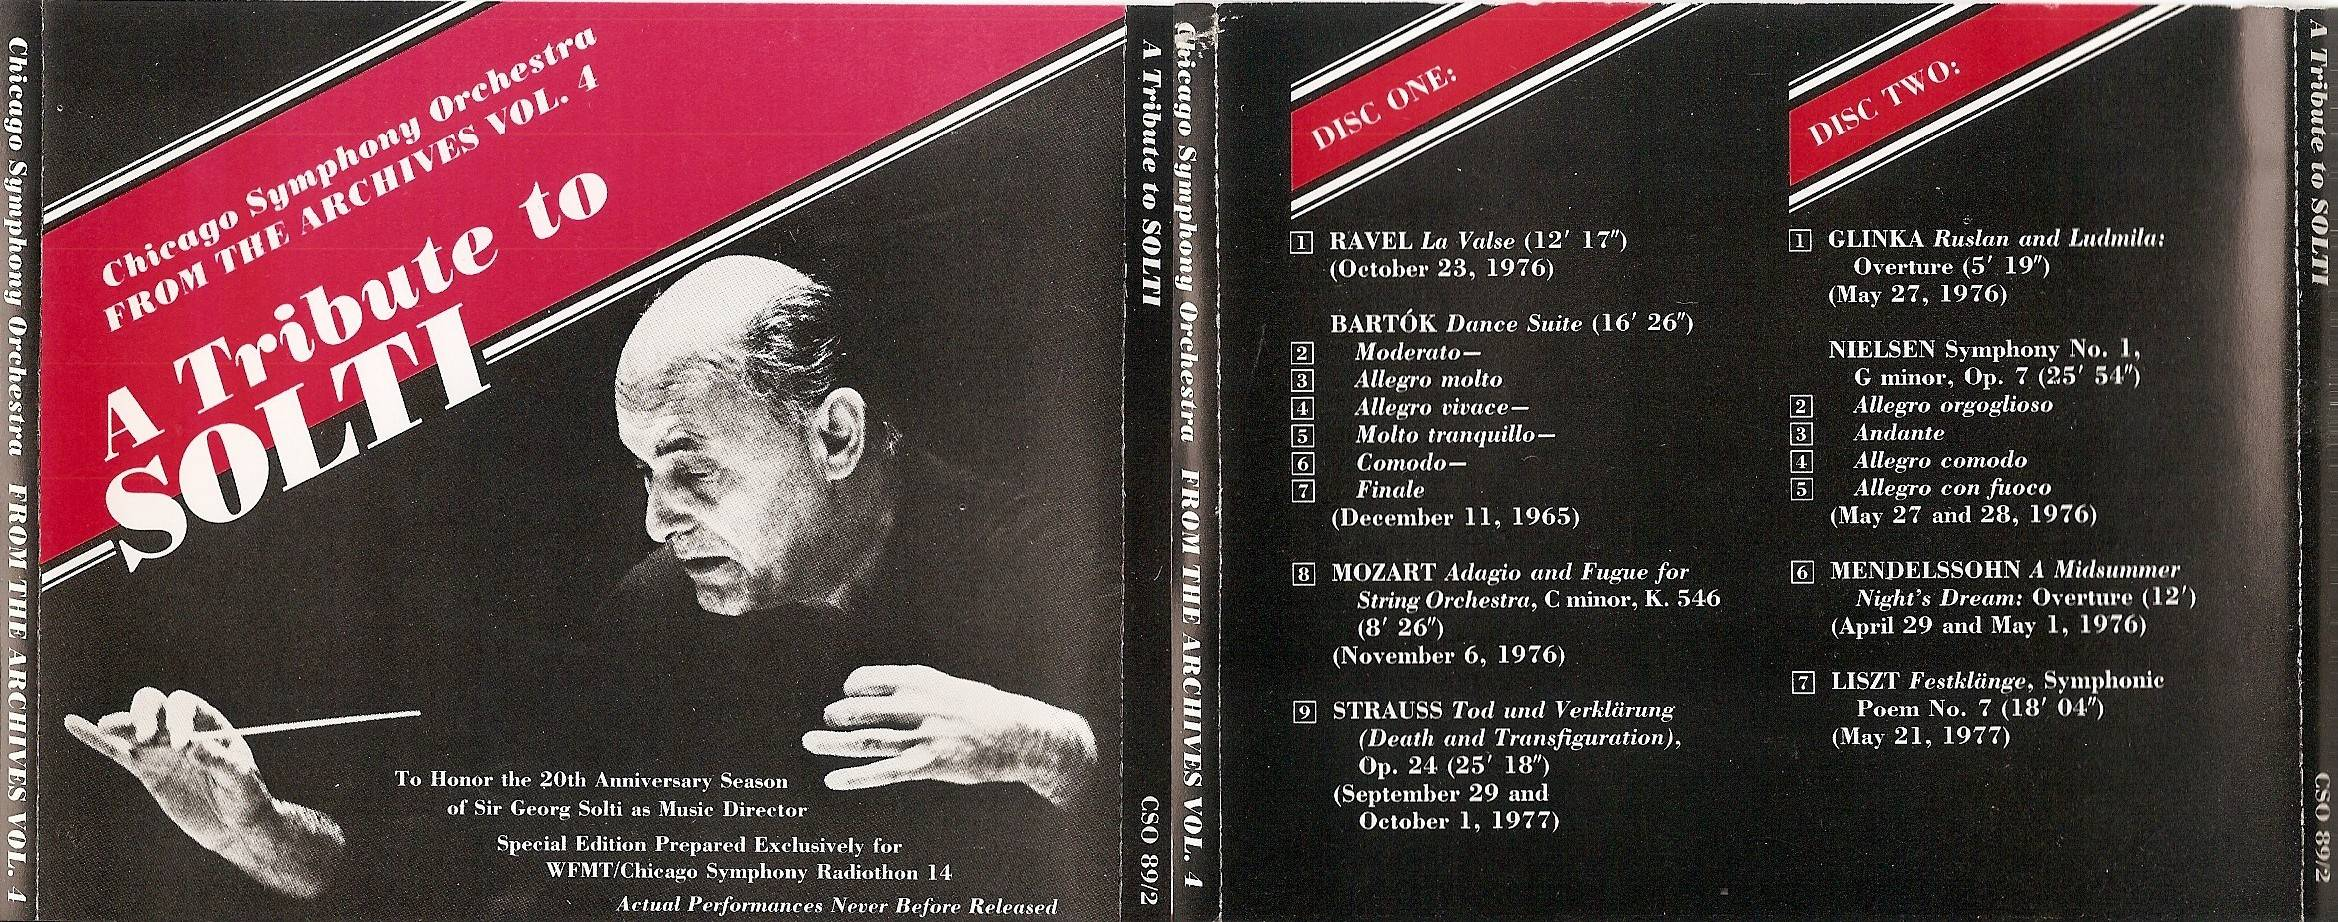 Chicago Symphony Orchestra - From The Archives, Vol.4: A Tribute to Solti, 2-CD set. (1989)